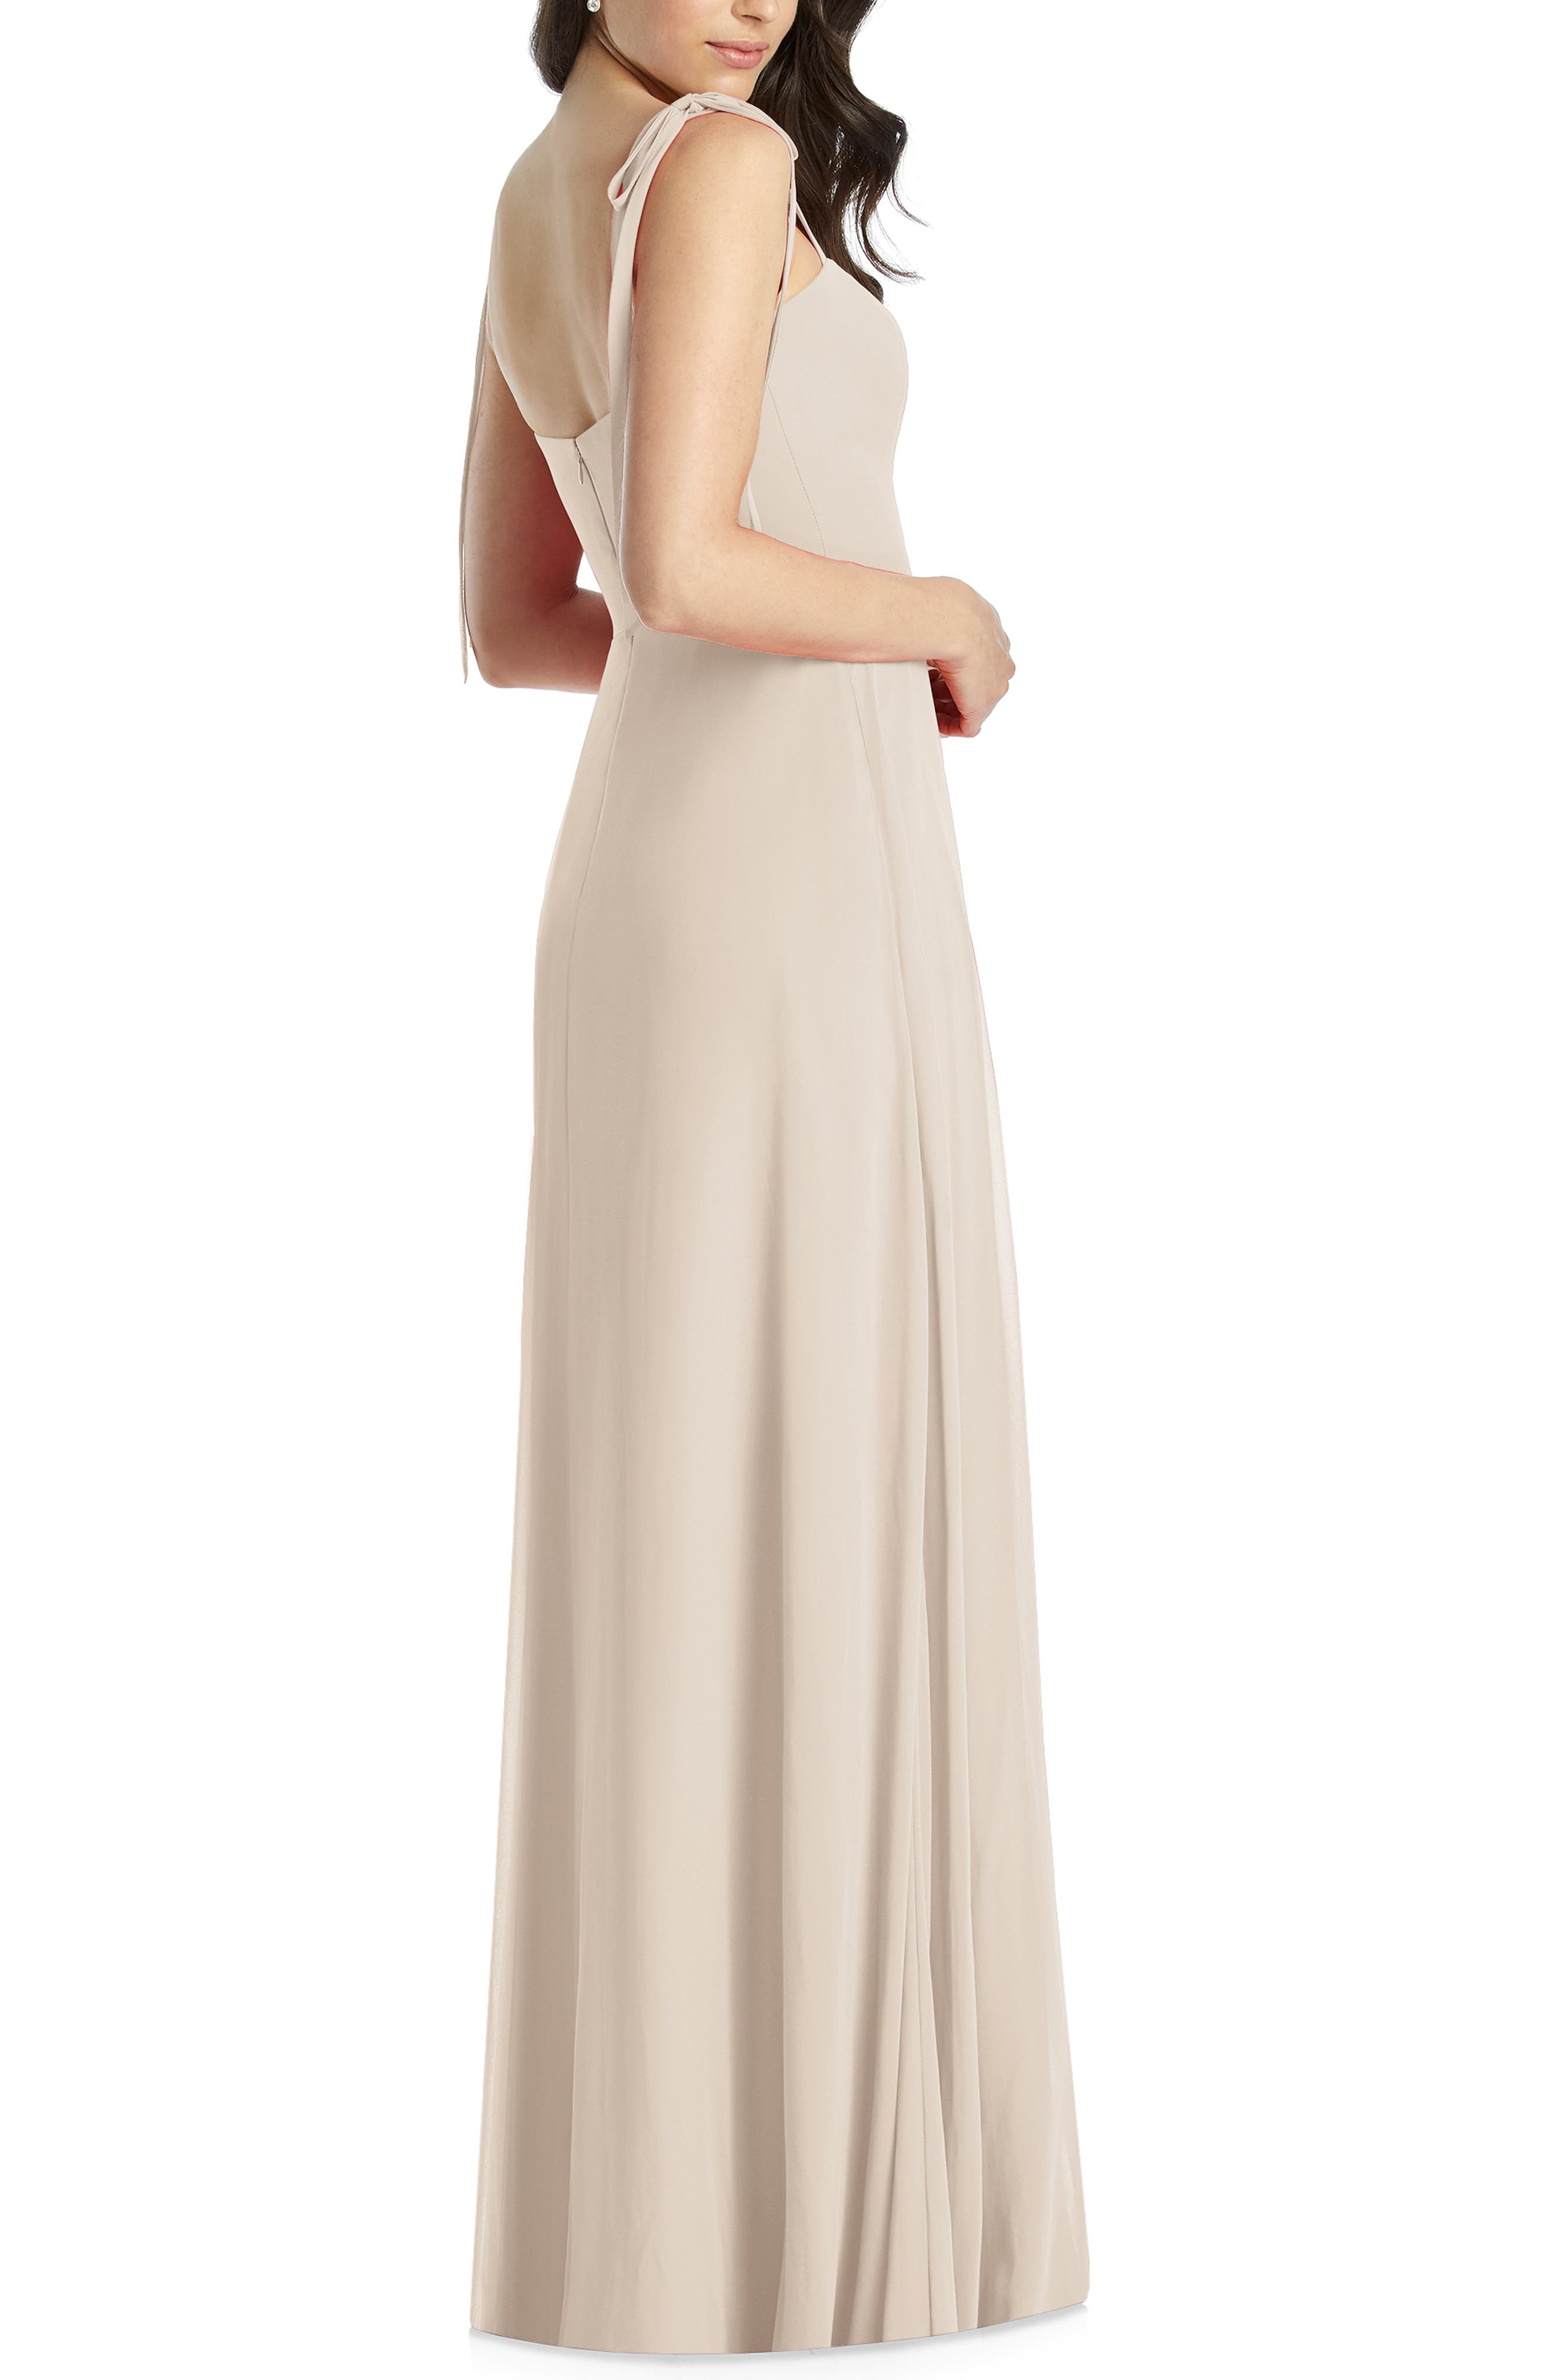 DESSY COLLECTION, Shoulder Tie Chiffon Evening Dress, Alternate thumbnail 2, color, CAMEO